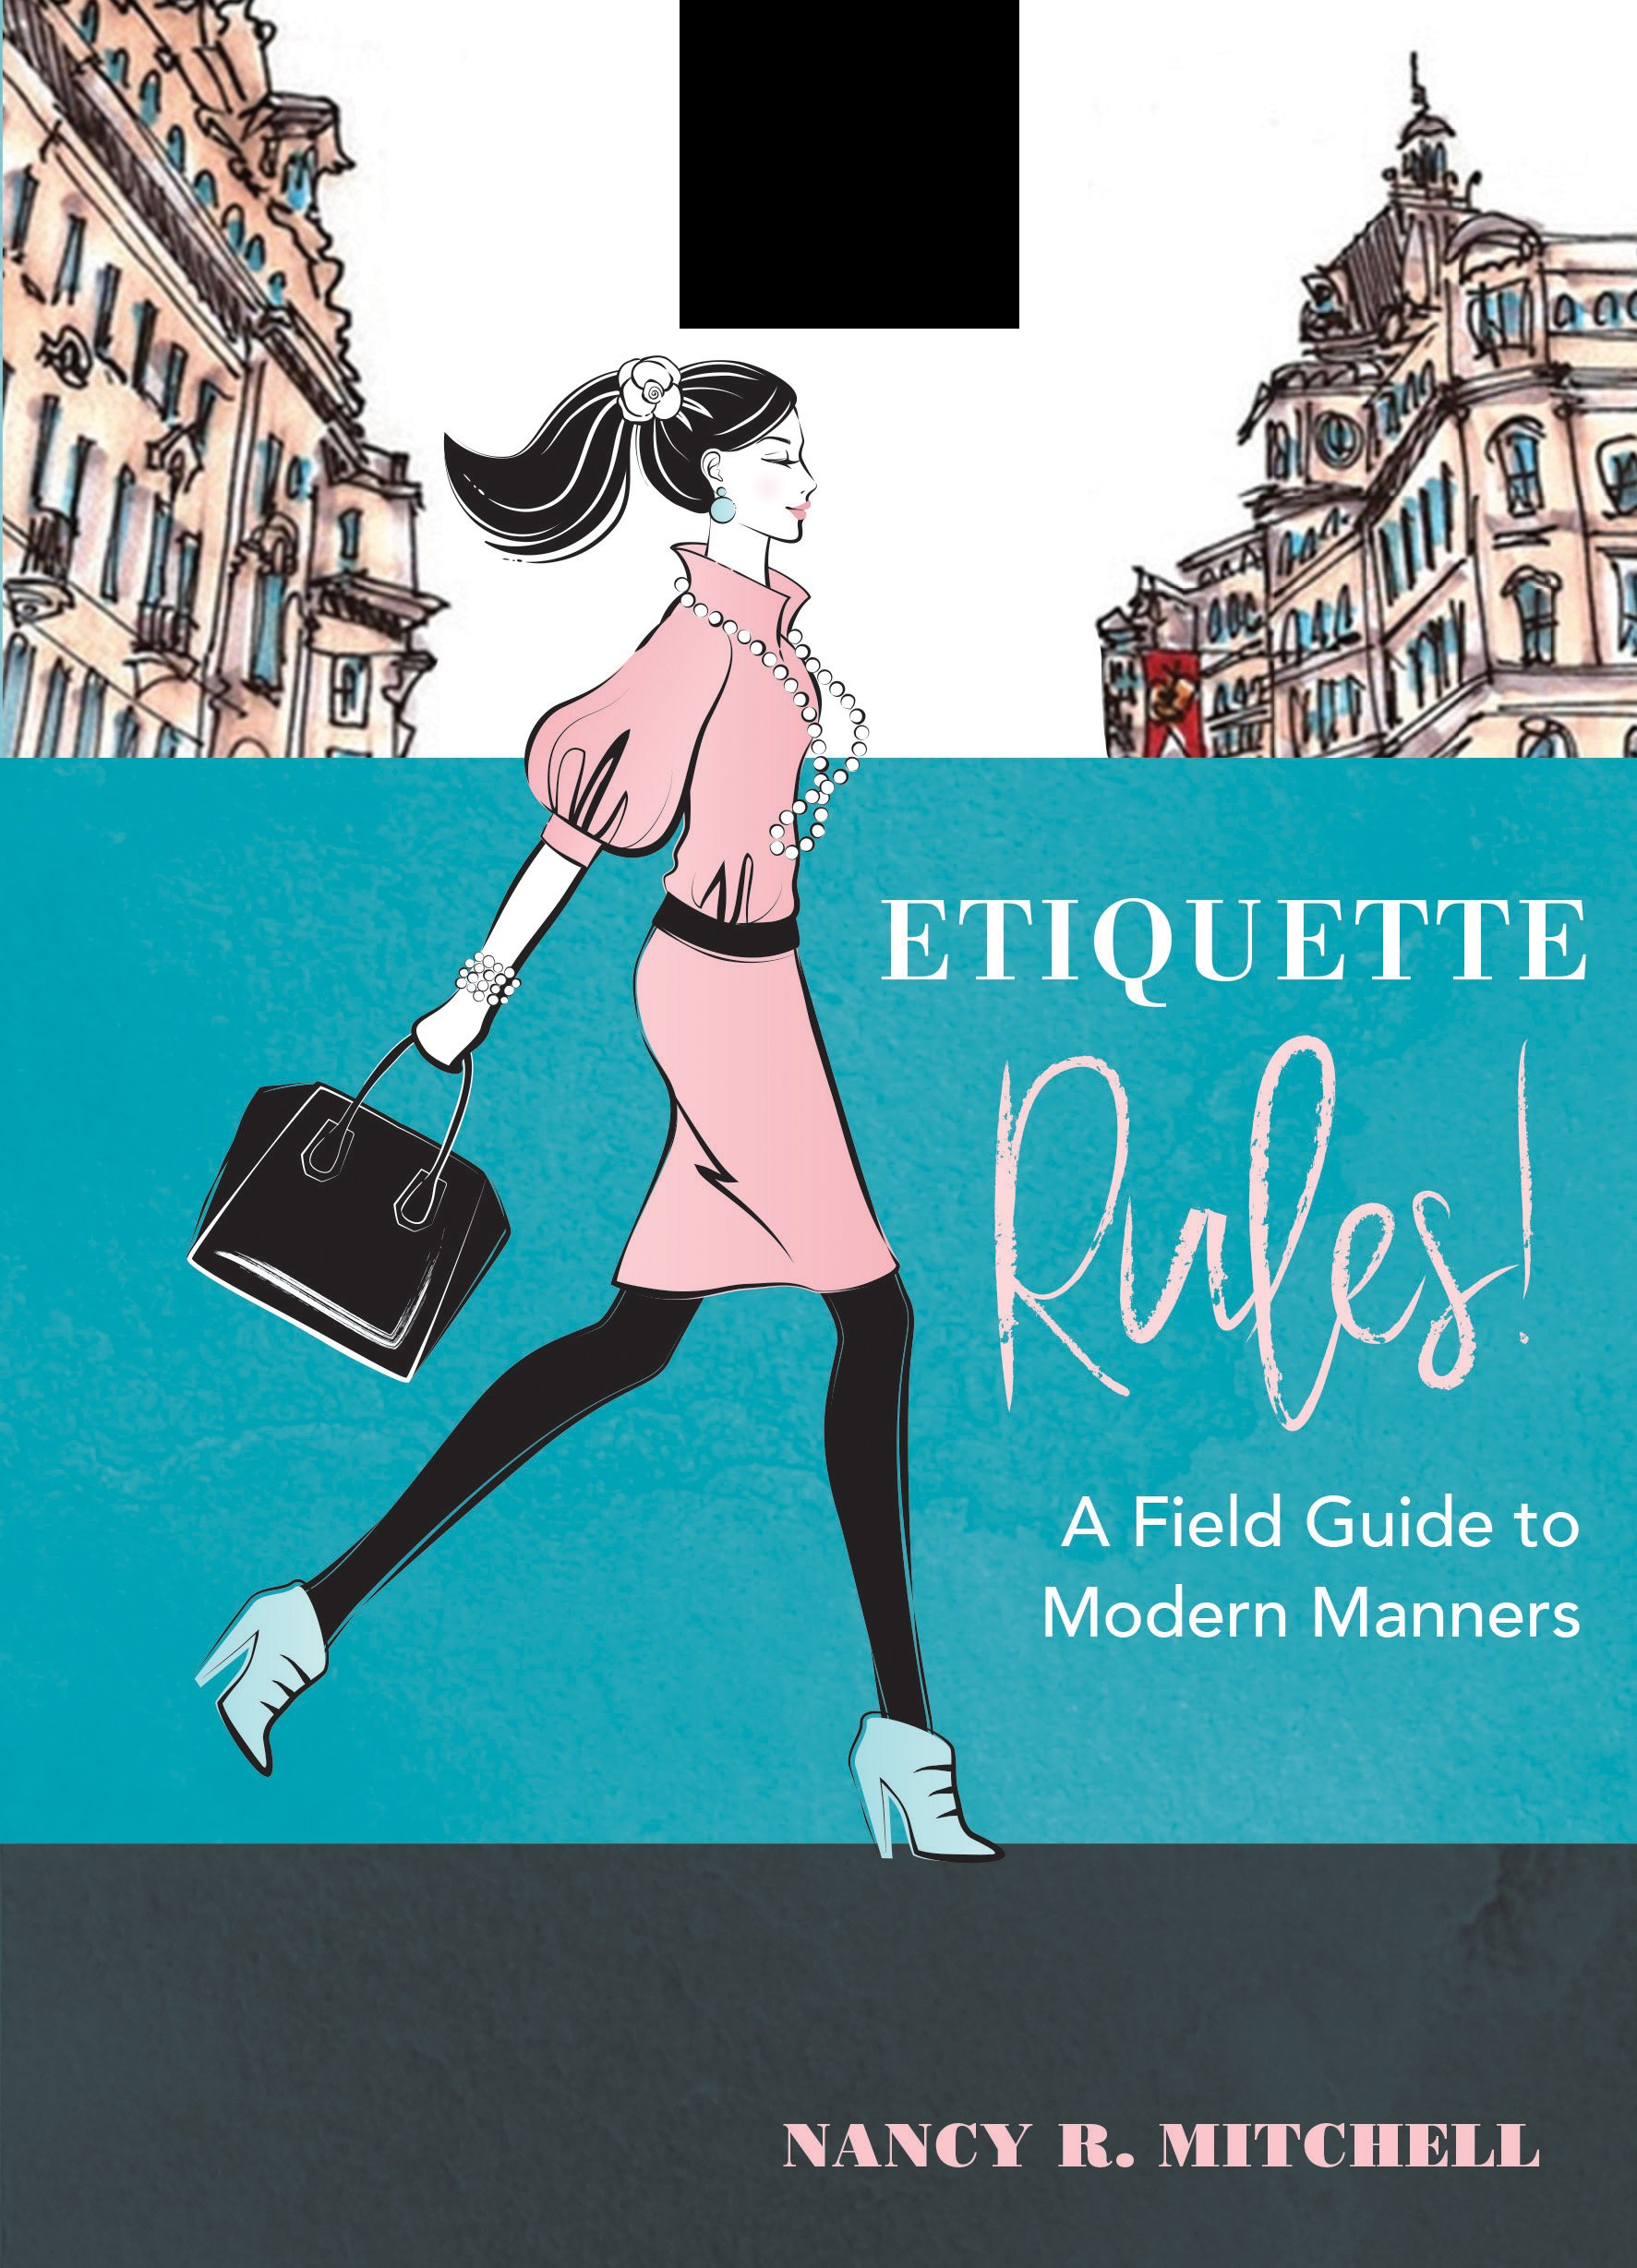 25Etiquette Rules That Everyone Should Know